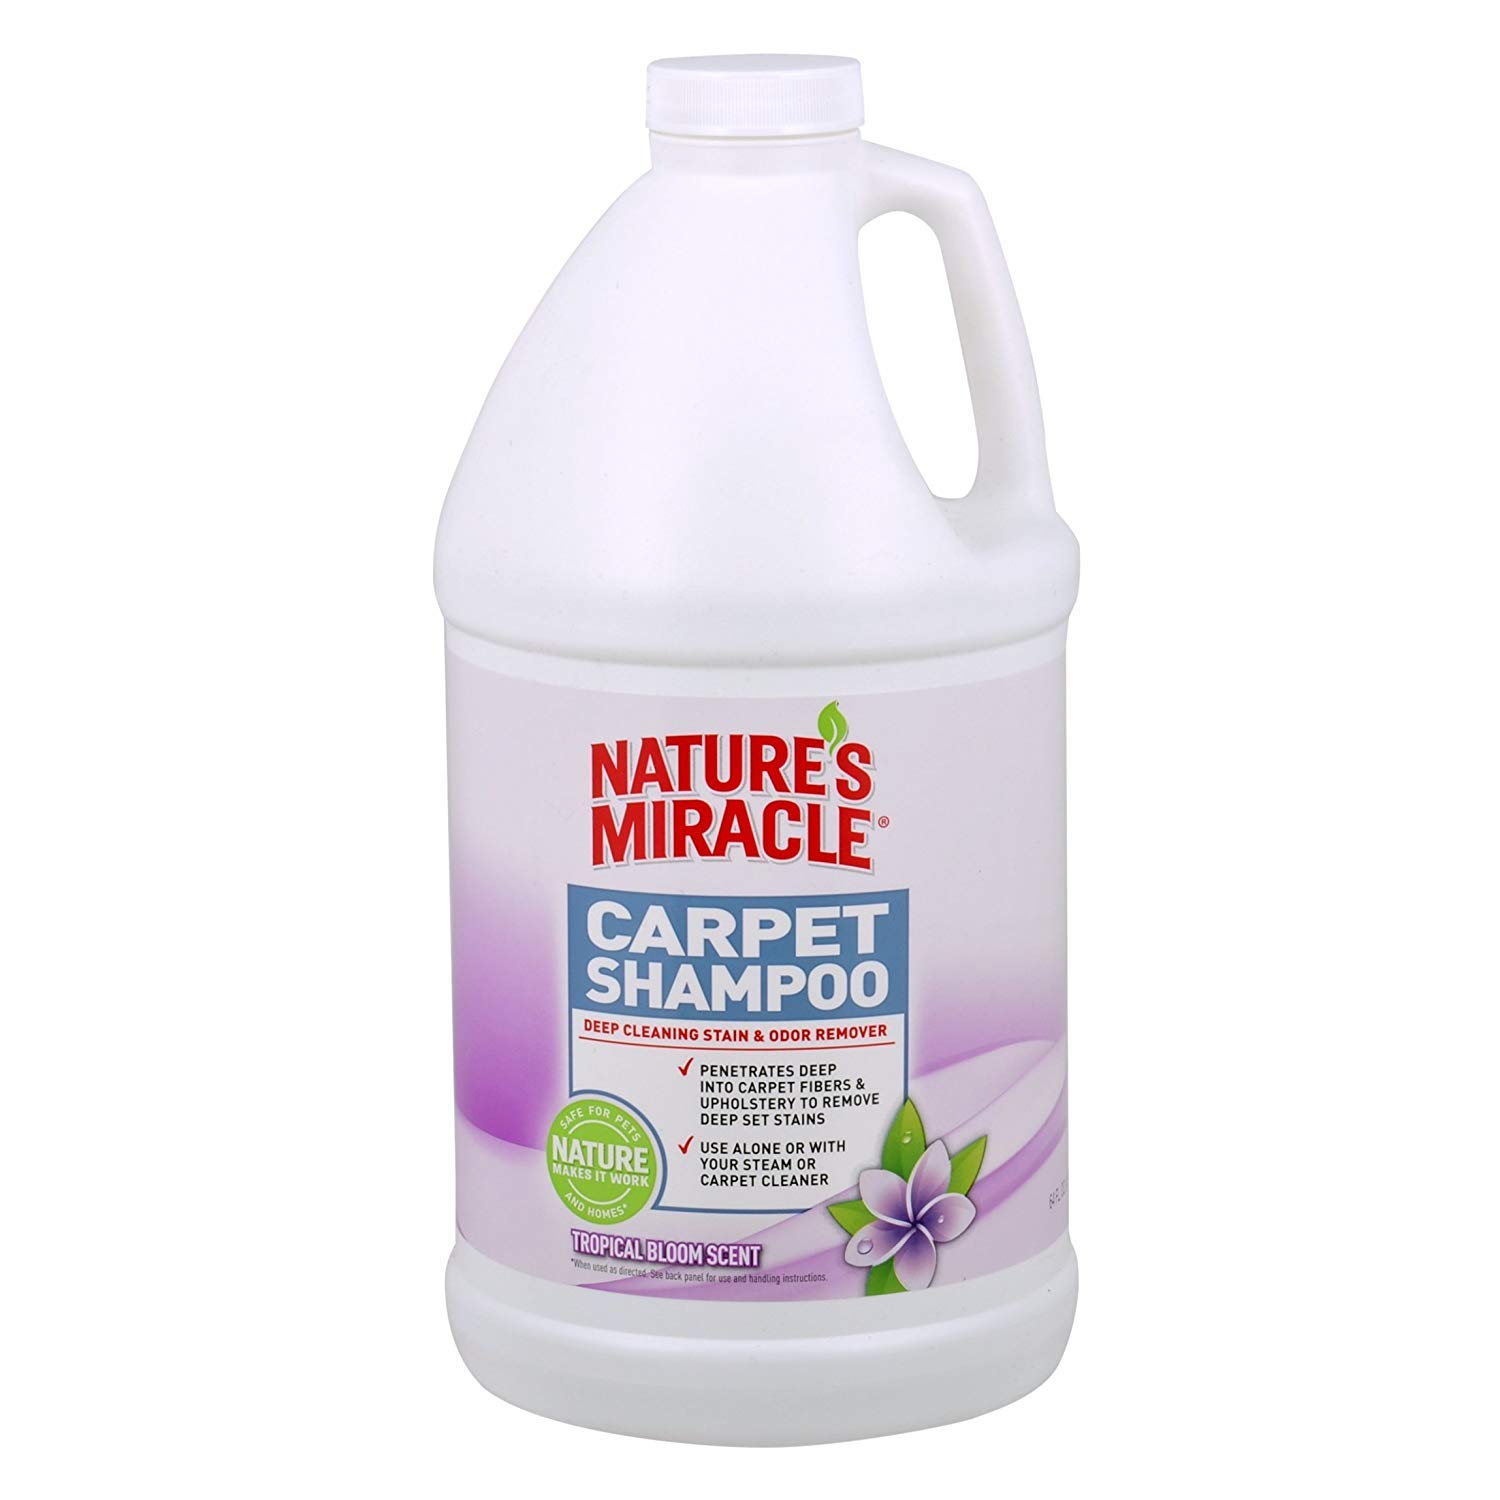 Nature's Miracle Tropical Bloom Scent Deep Cleaning Carpet Shampoo, Tropical Bloom.5 Gallon (1 Gallon)